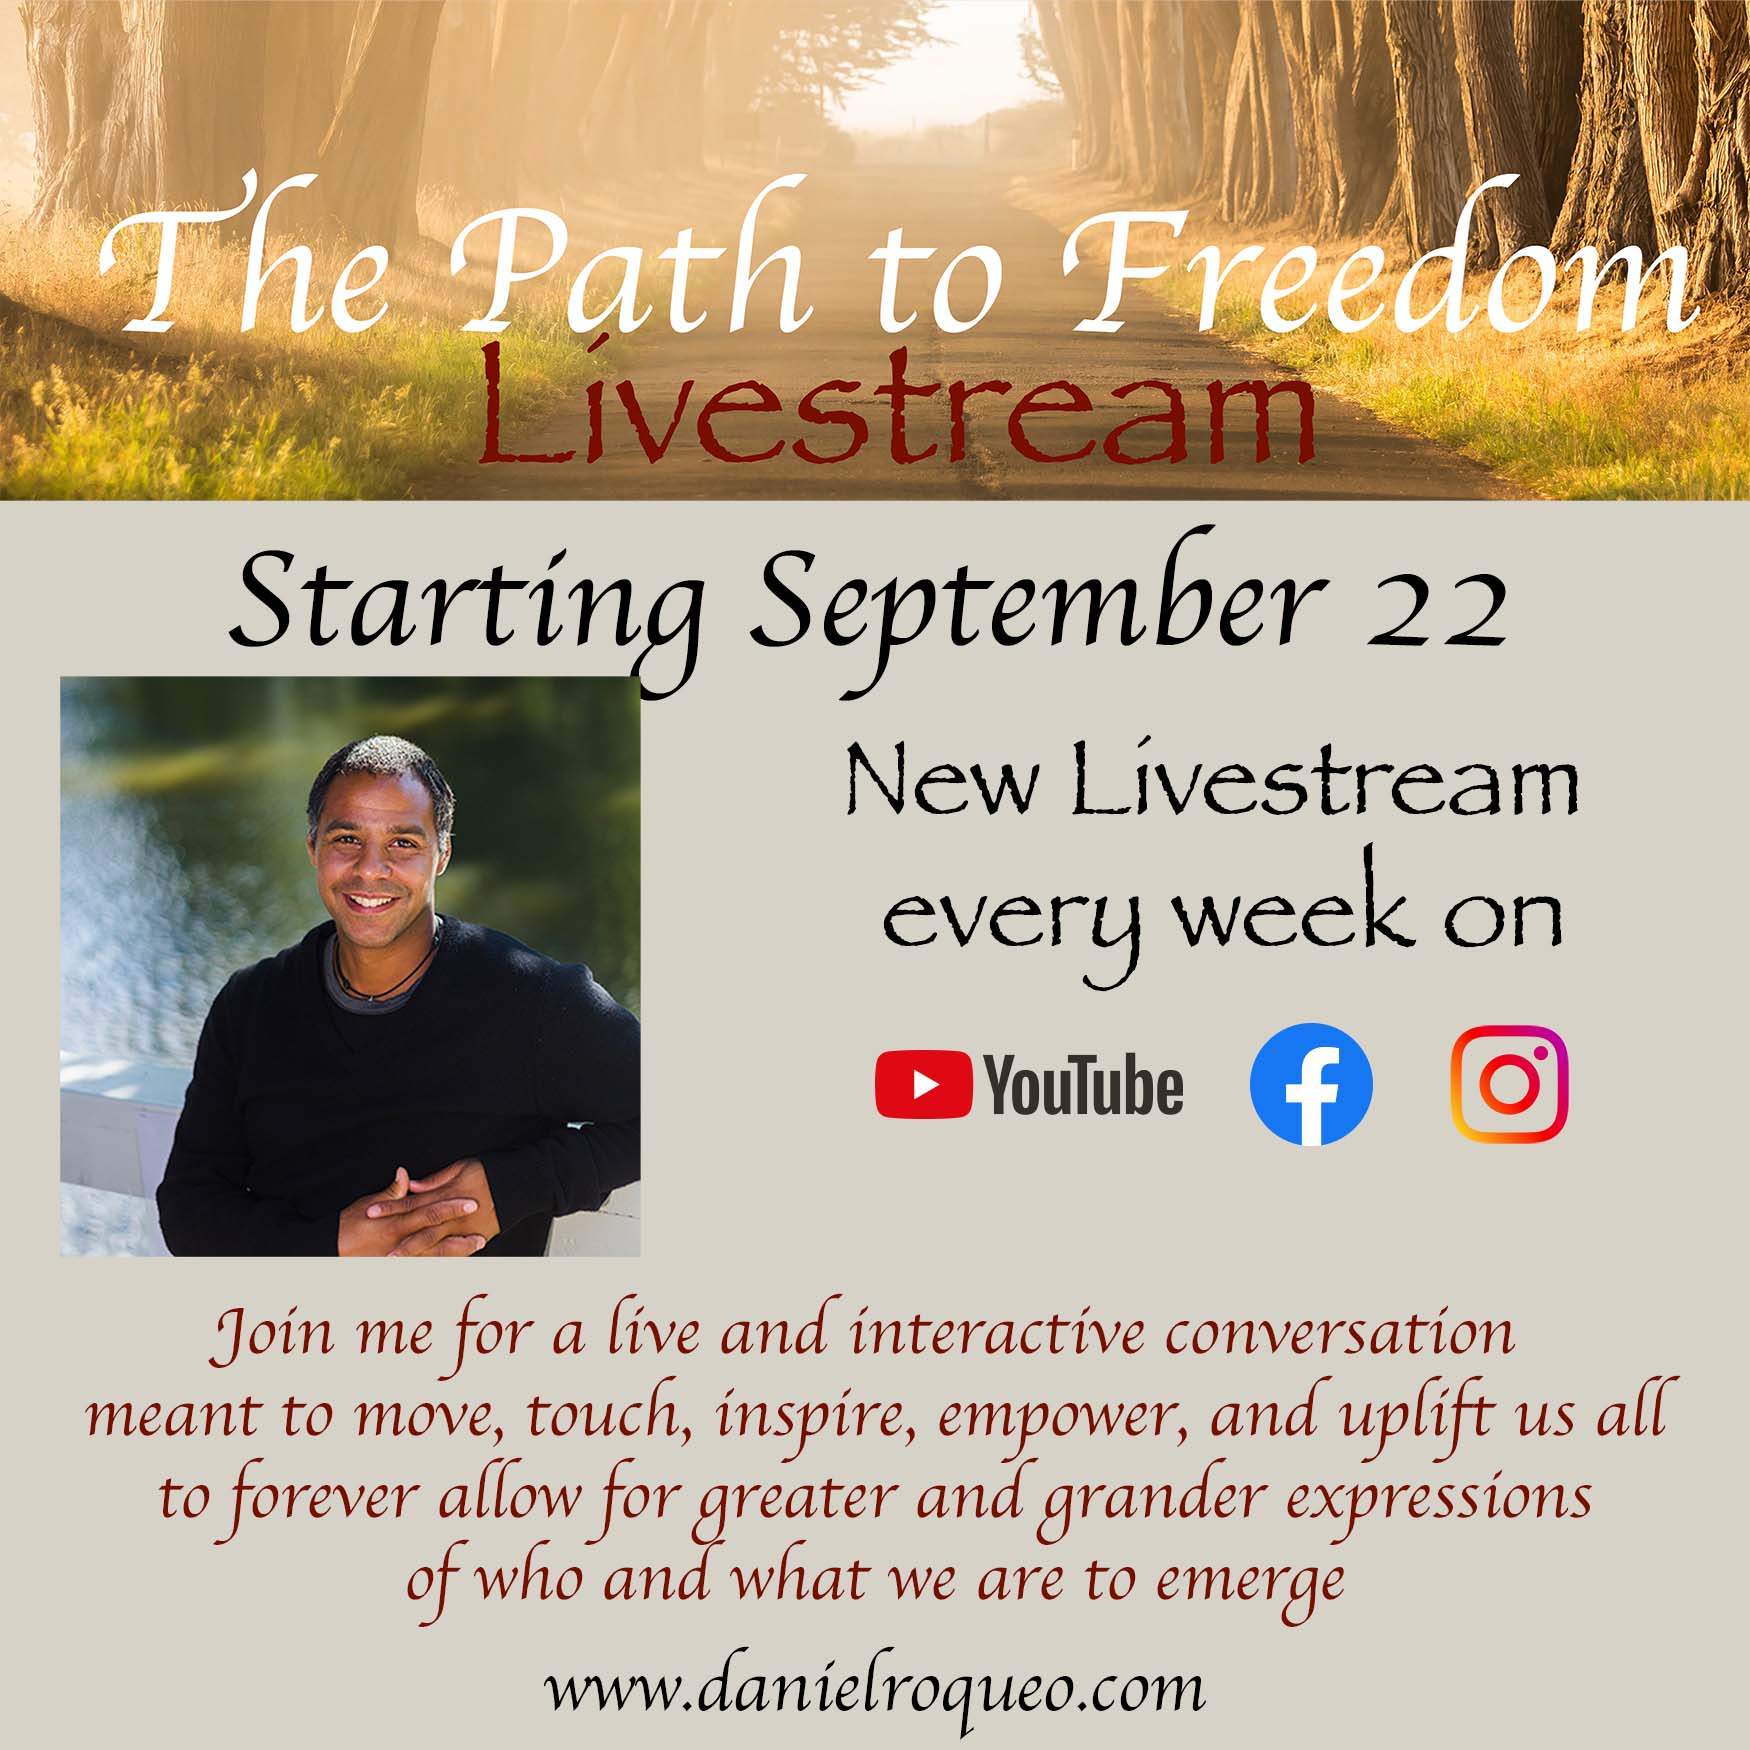 The path to freedom Livestream